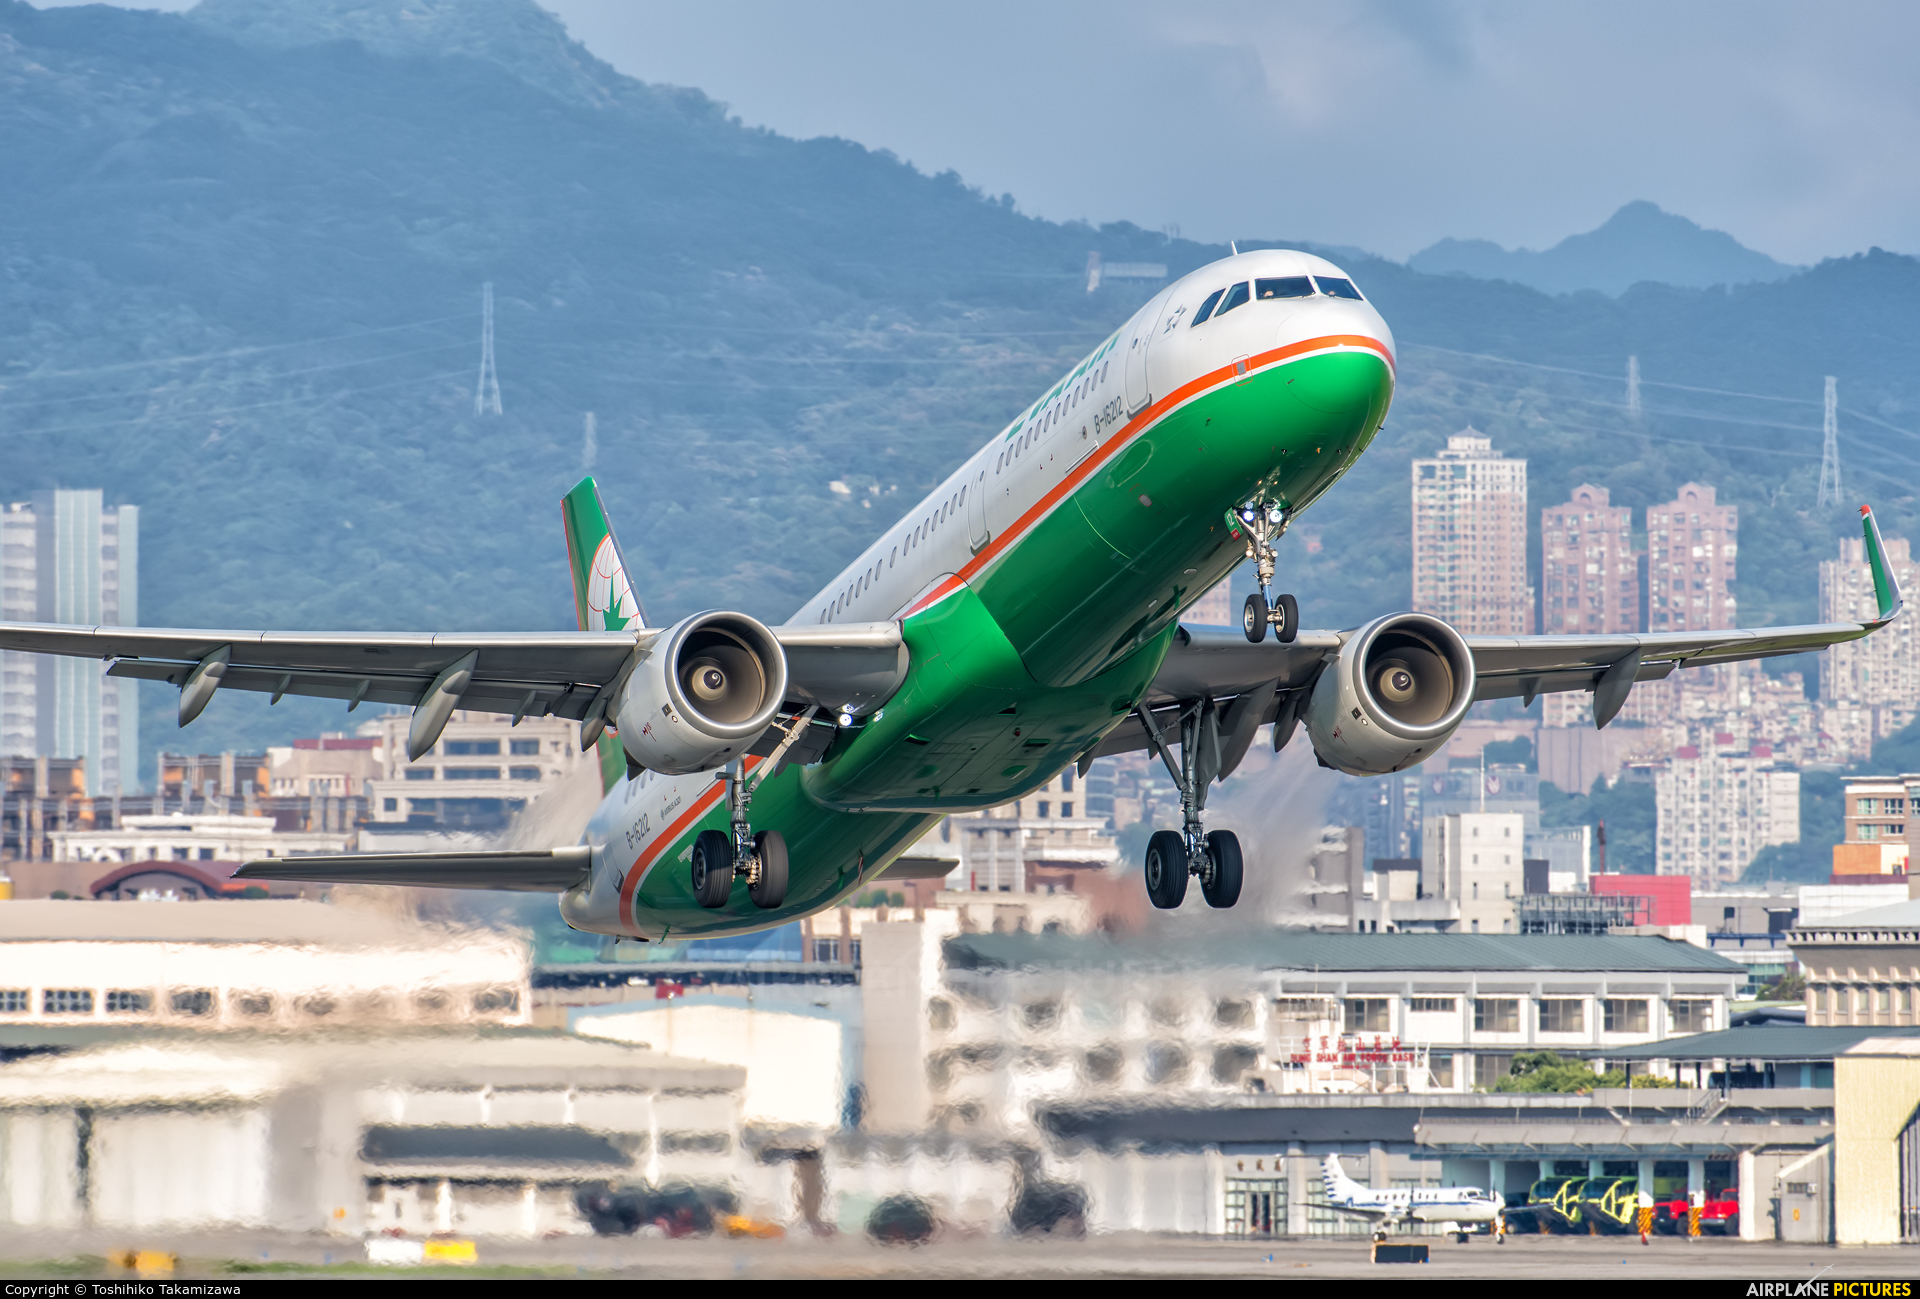 Eva Air B-16212 aircraft at Taipei Sung Shan/Songshan Airport